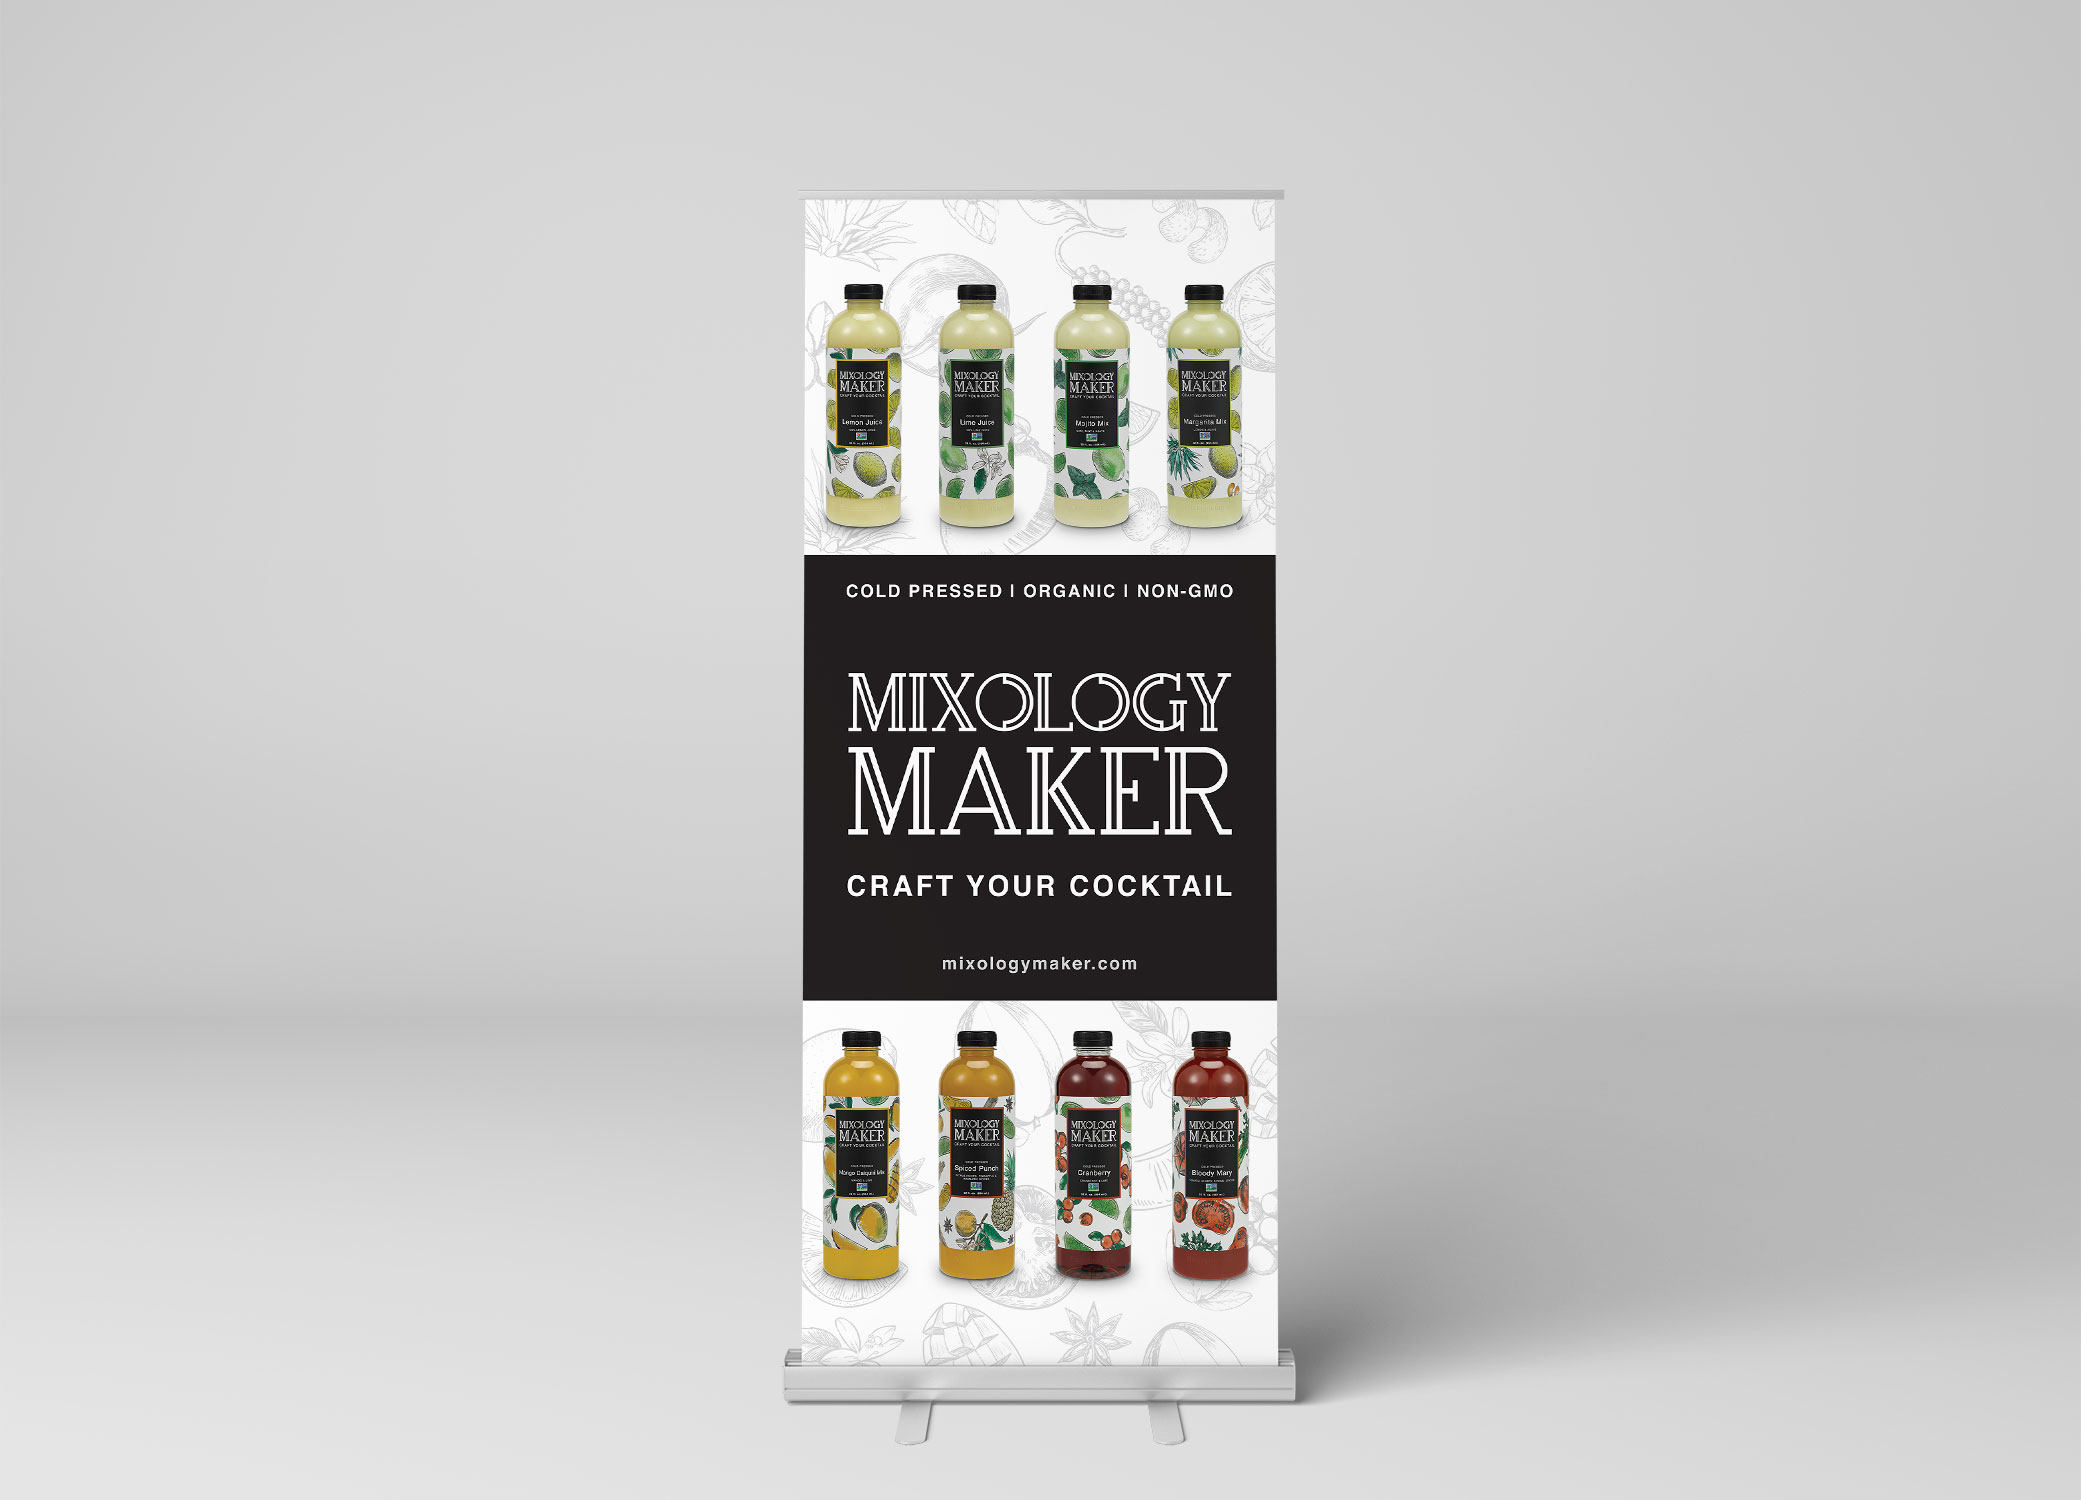 Mixology Maker banner design with black-and-white banded logo in the center and products lining the top and bottom.